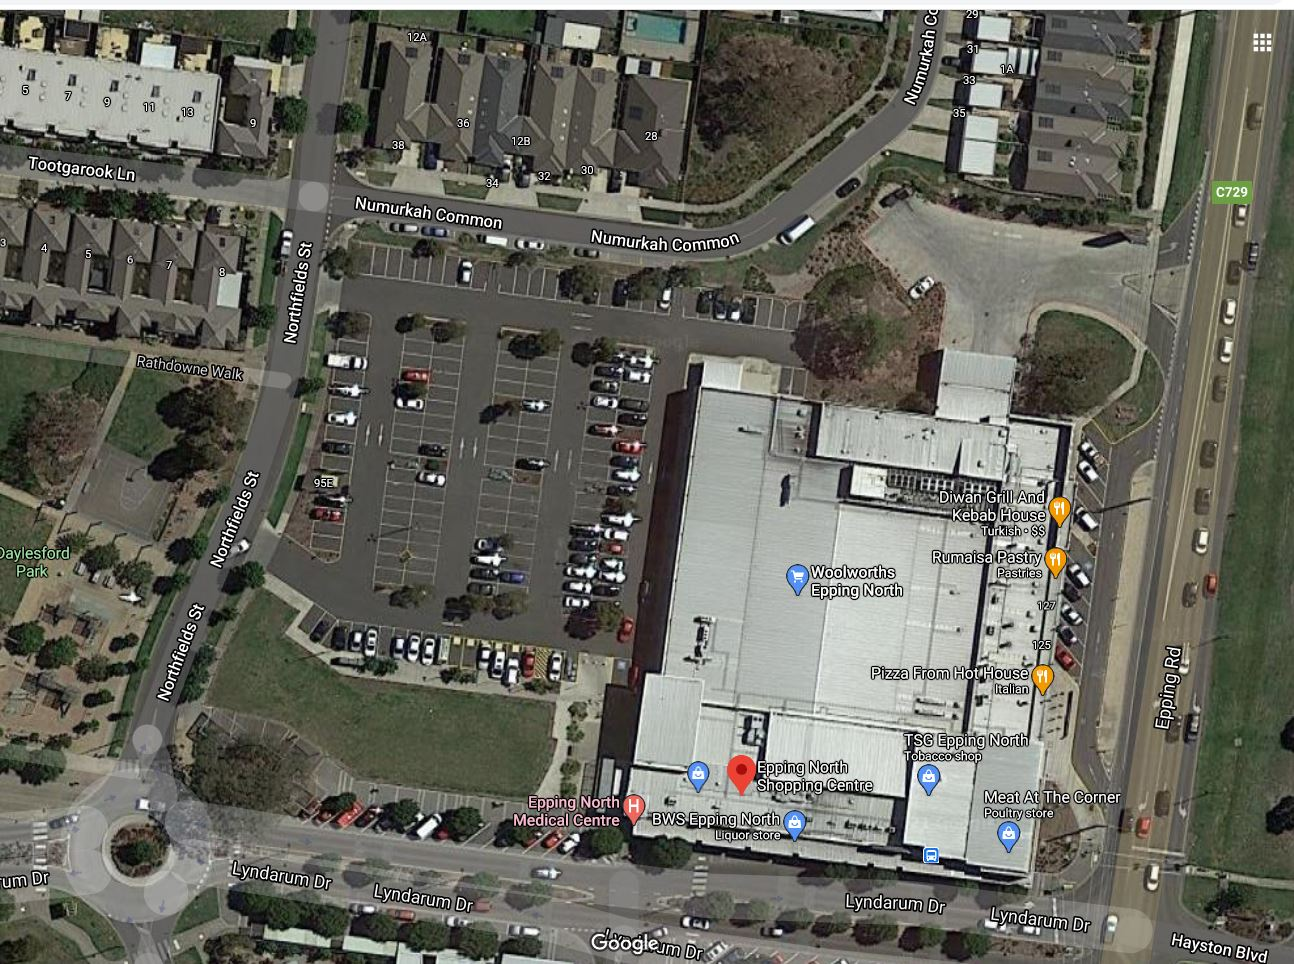 Whittlesea - Epping North Shopping Centre (Whittlesea Council)